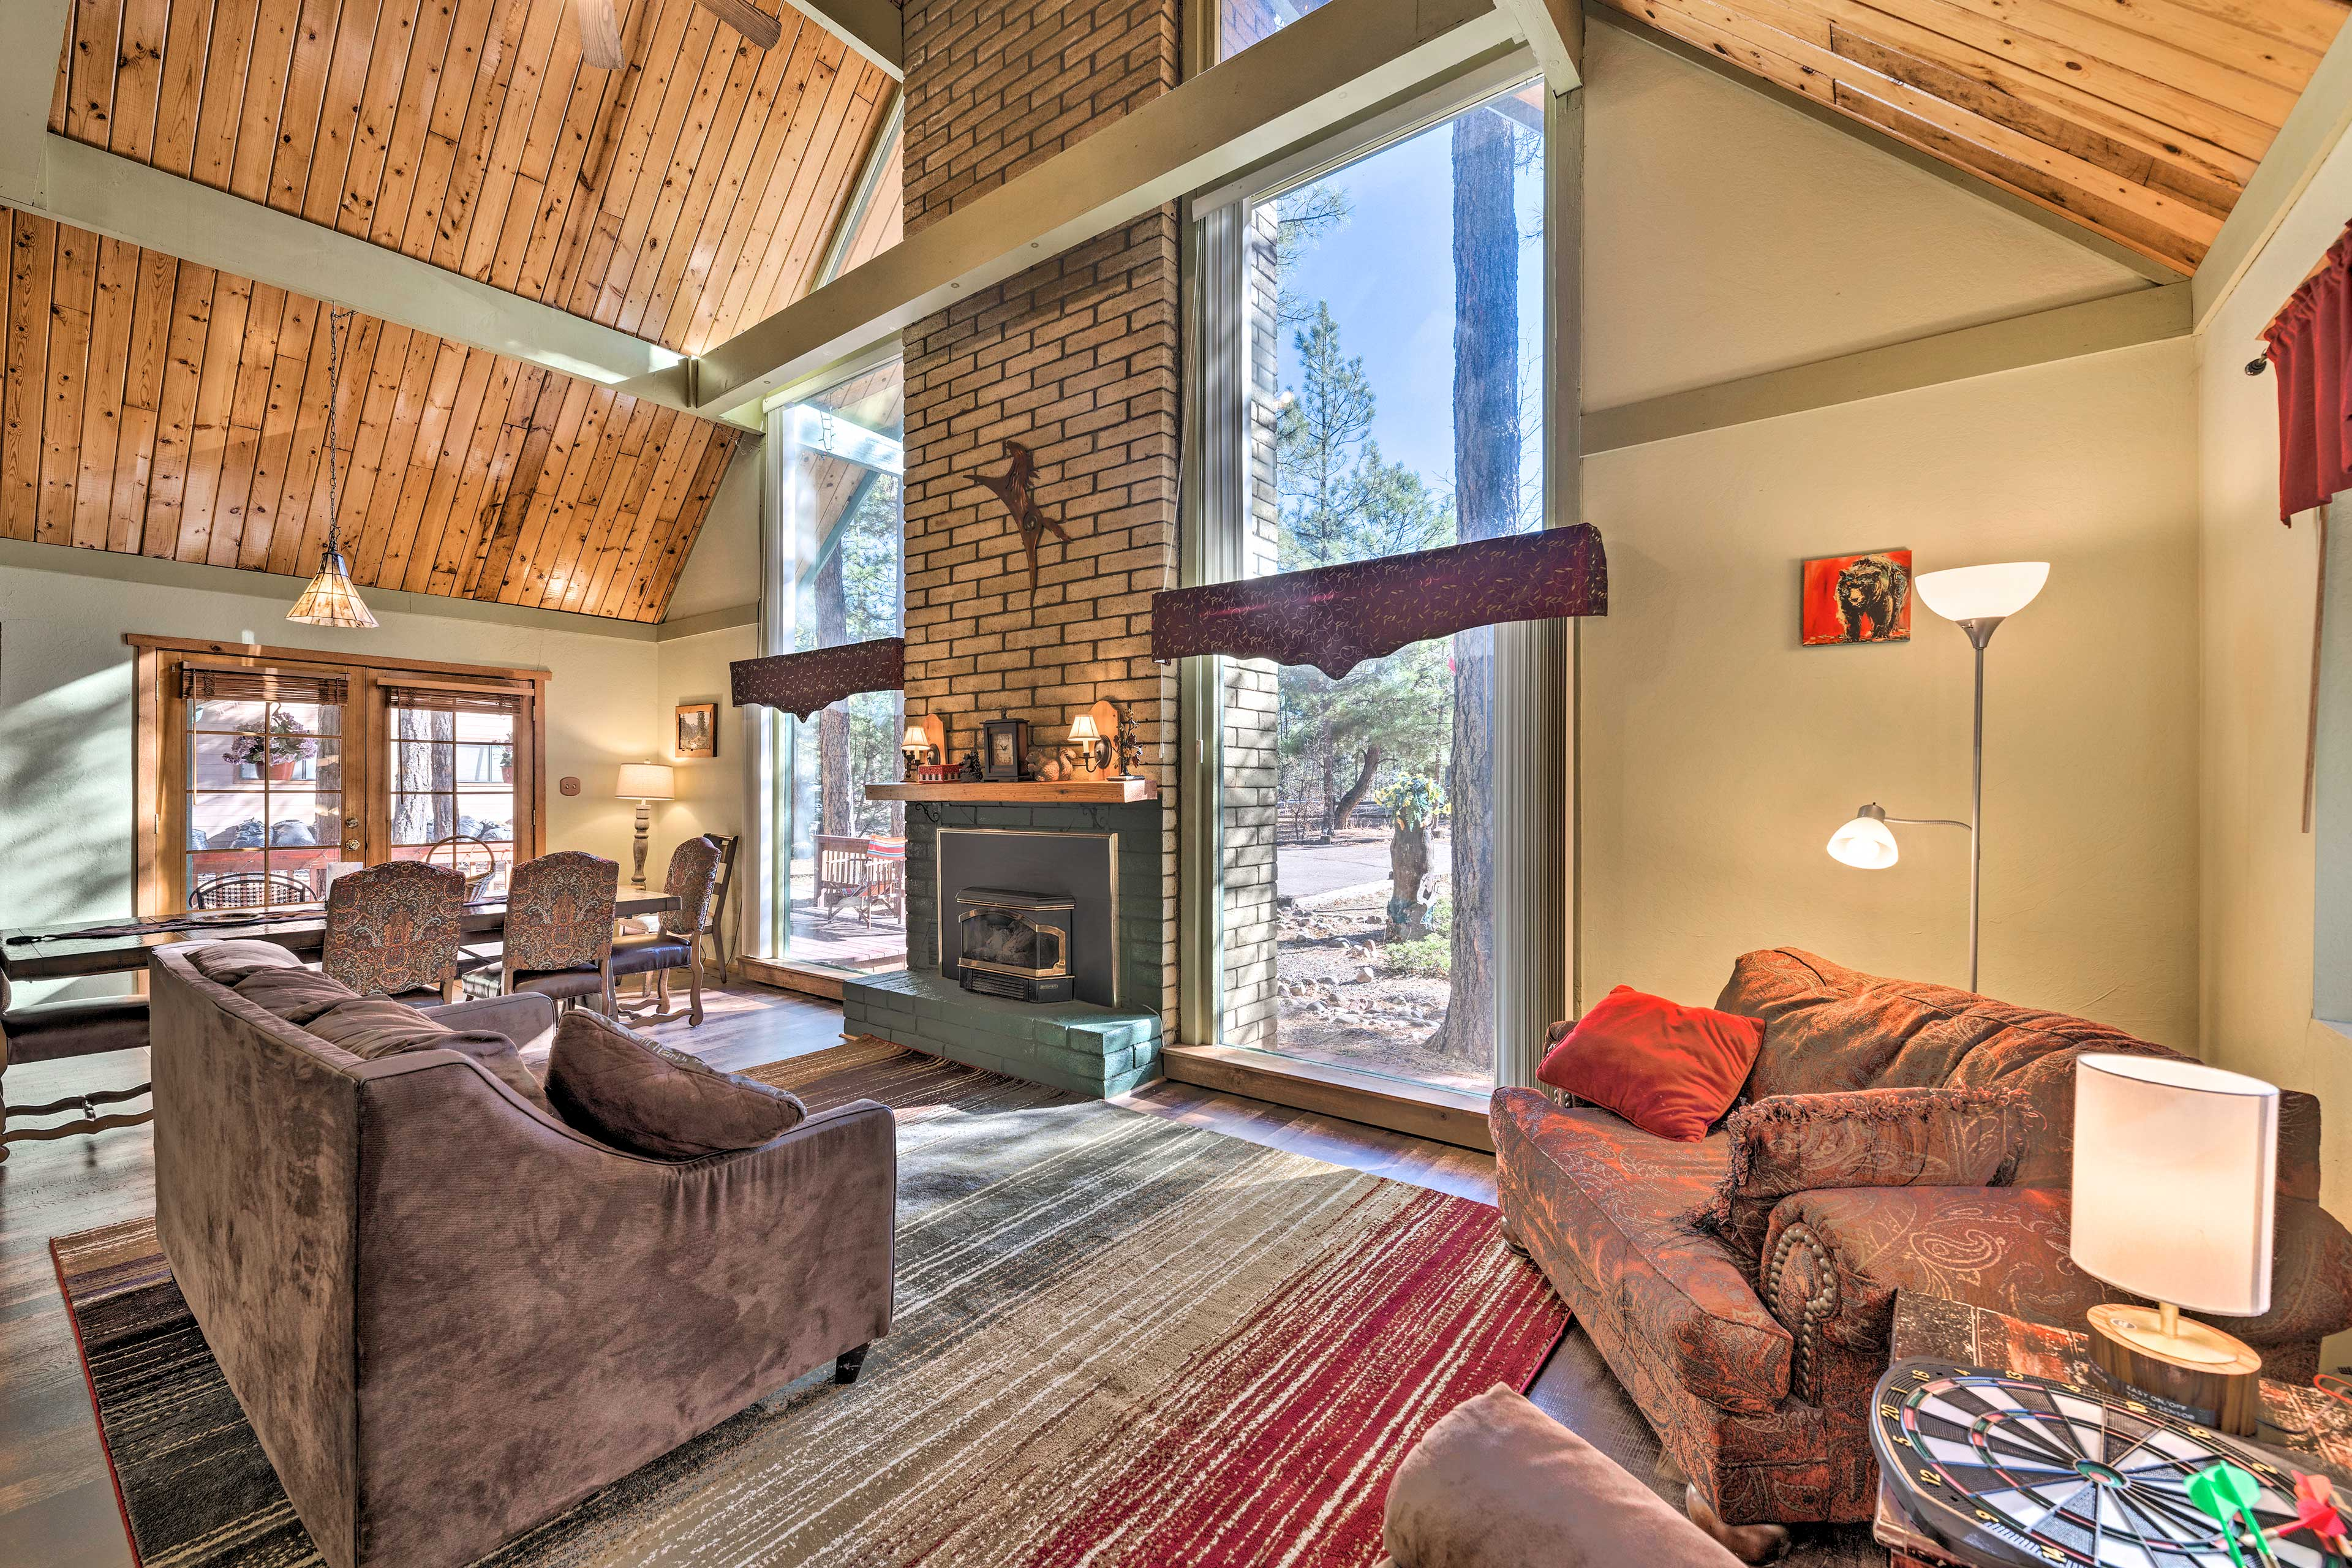 This cozy-yet-rustic vacation rental beckons your family for a fun-filled vacay!